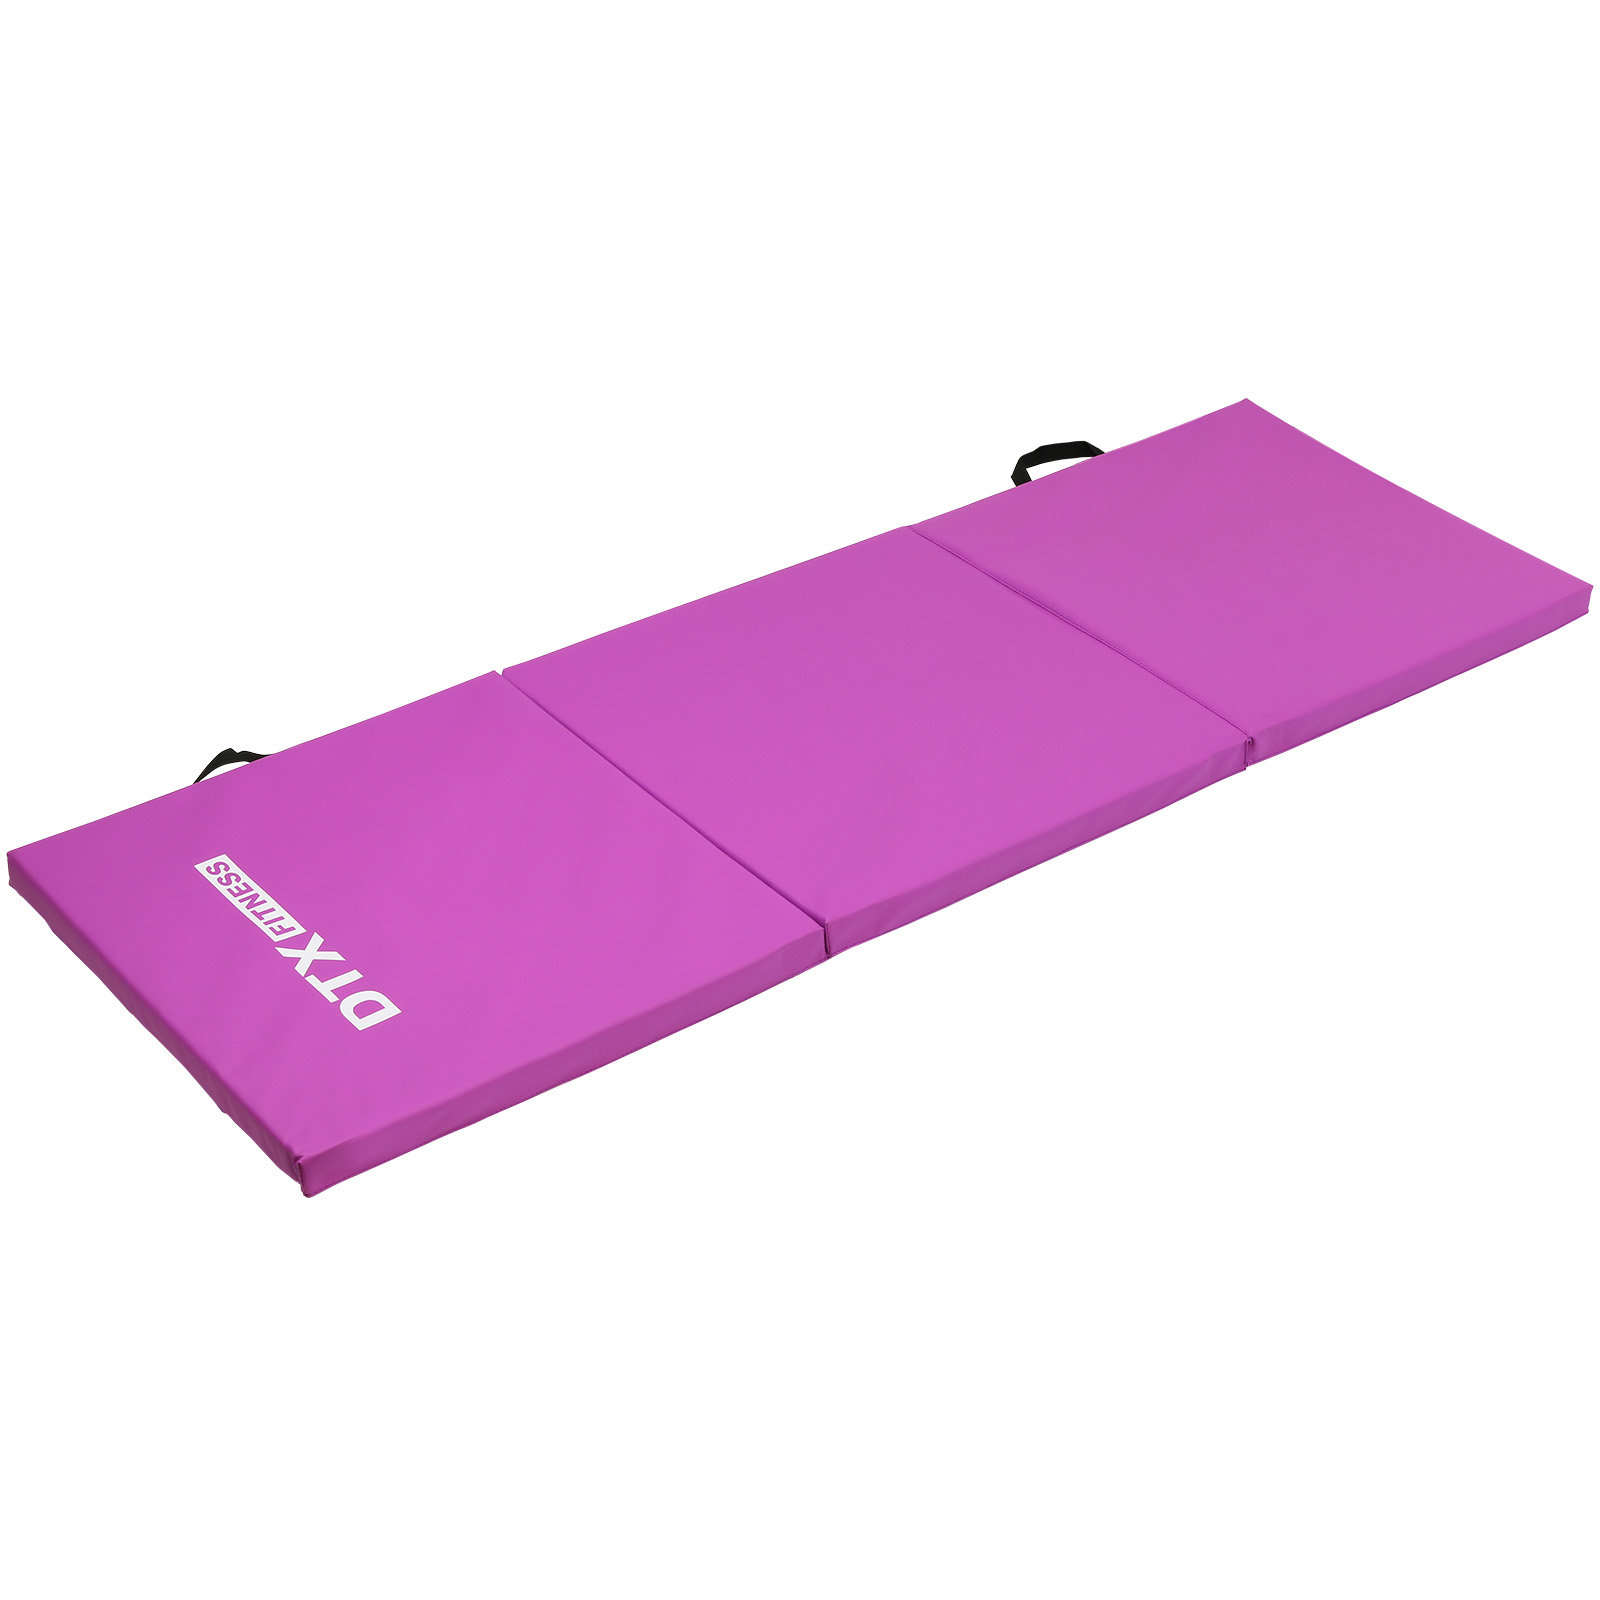 gymnastics workout diy gym pilates accessories yoga itm exercise fitness mats mat gymnastic